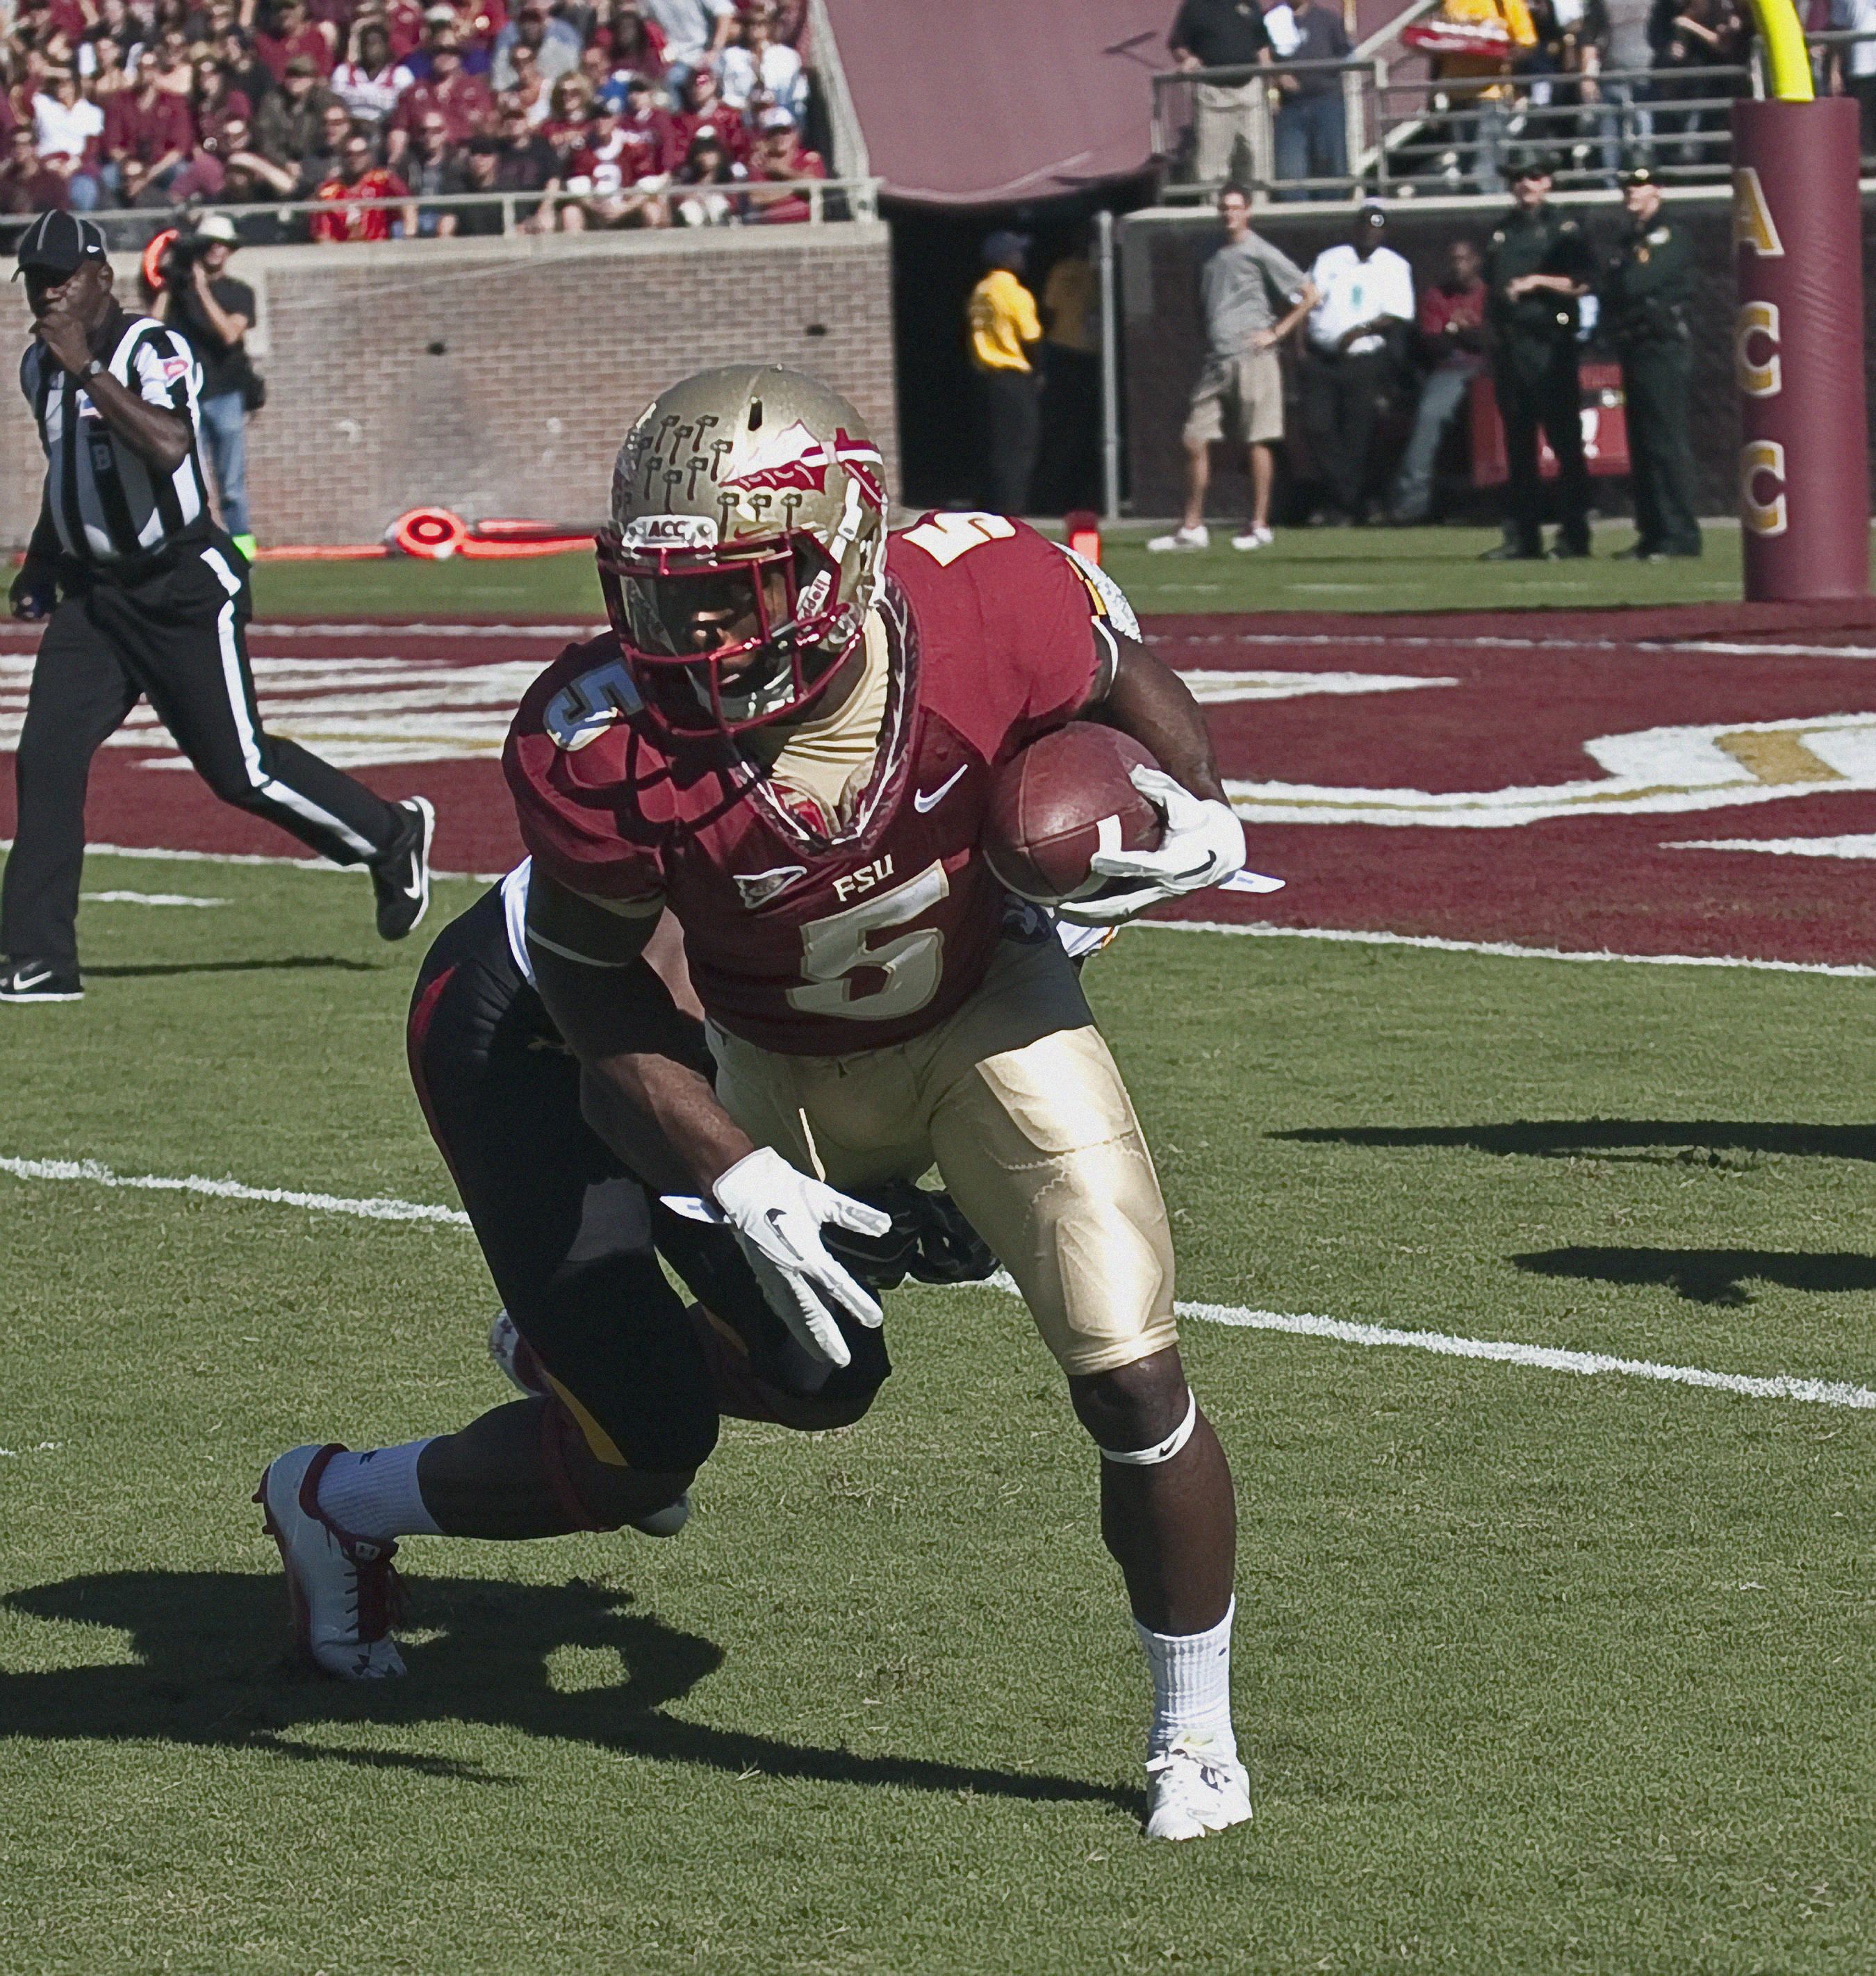 Greg Reid (5) returning a punt. FSU vs Maryland 10/22/1111